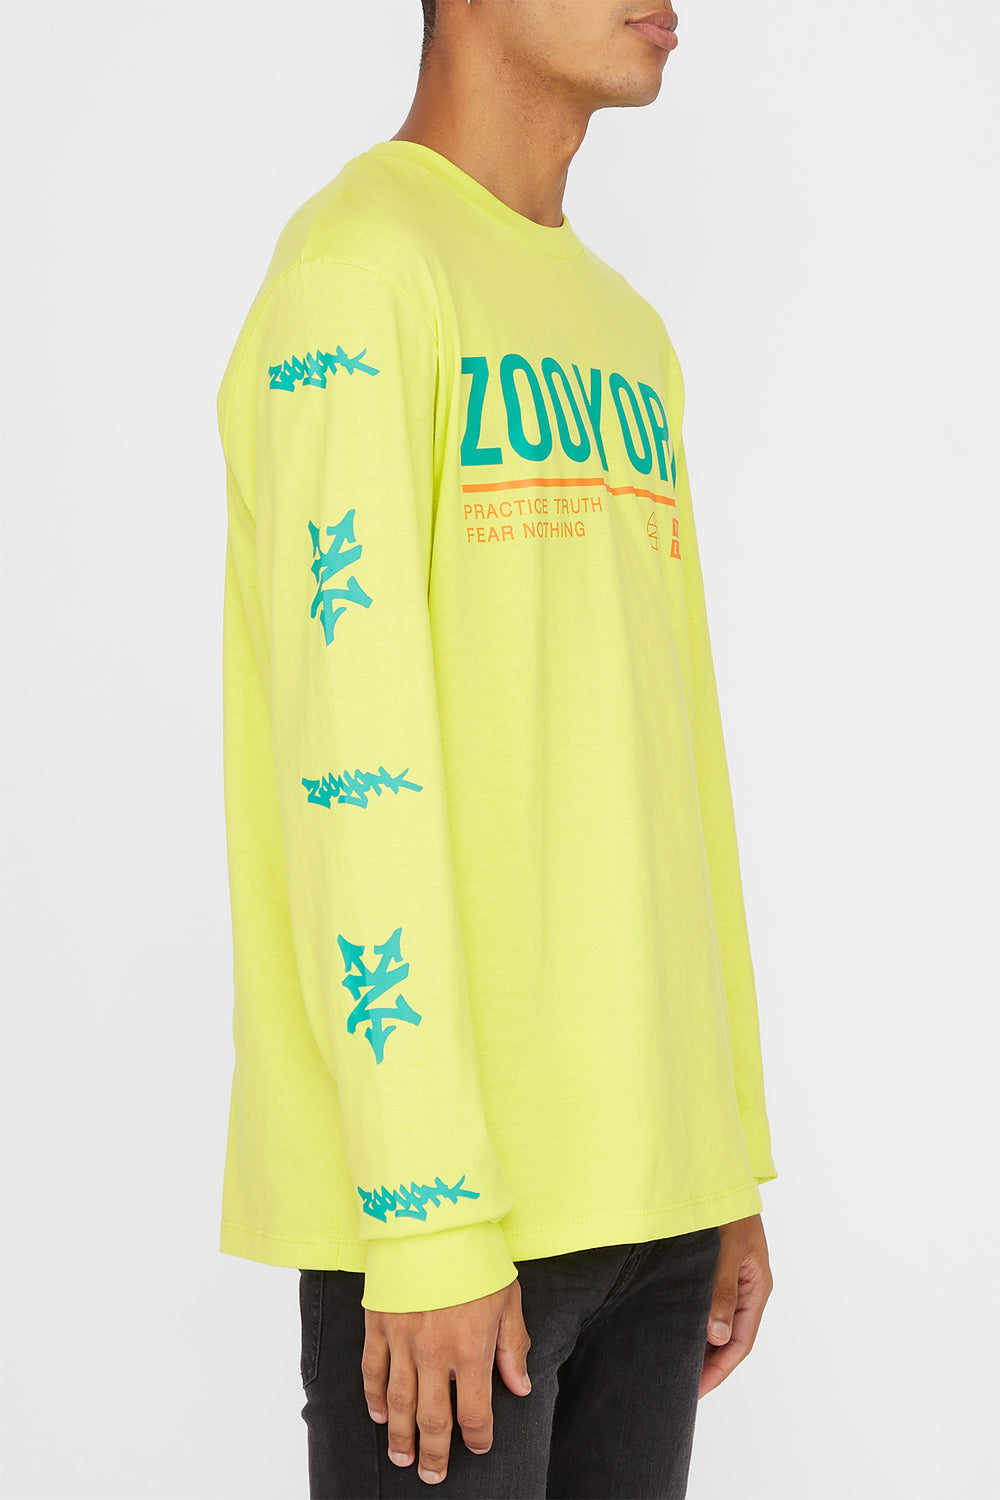 Zoo York Mens Practice Truth Long Sleeve Shirt Yellow